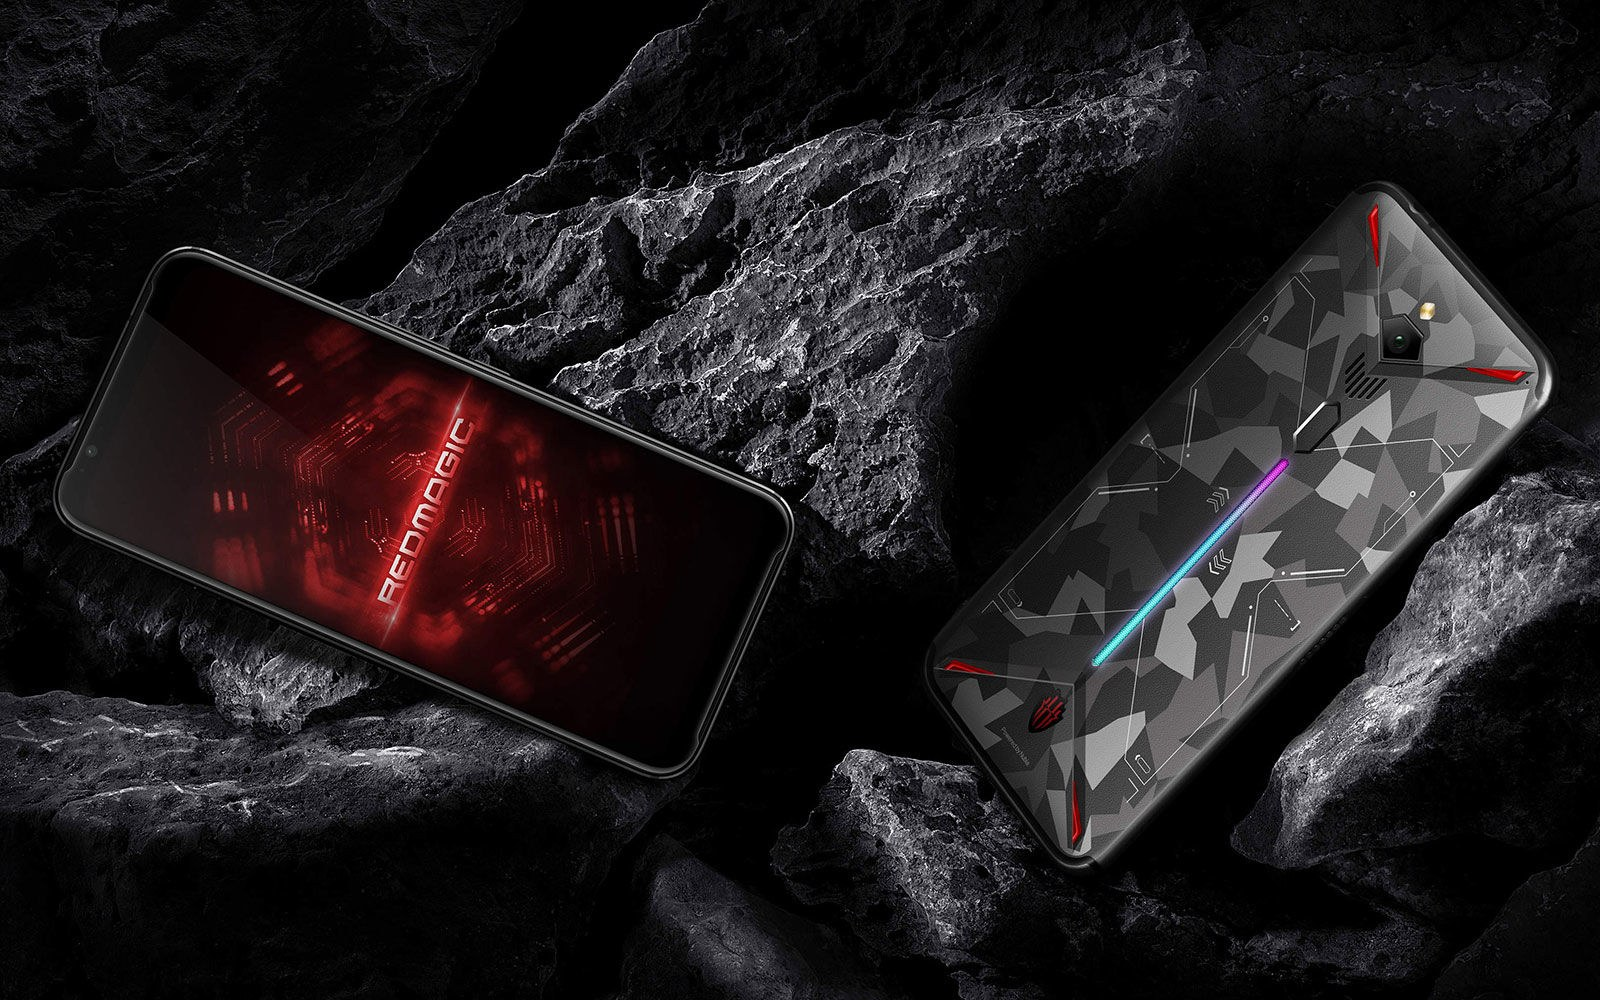 Nubia's gaming-focused Red Magic 3 comes with a 90Hz display, an internal fan, and 8K recording